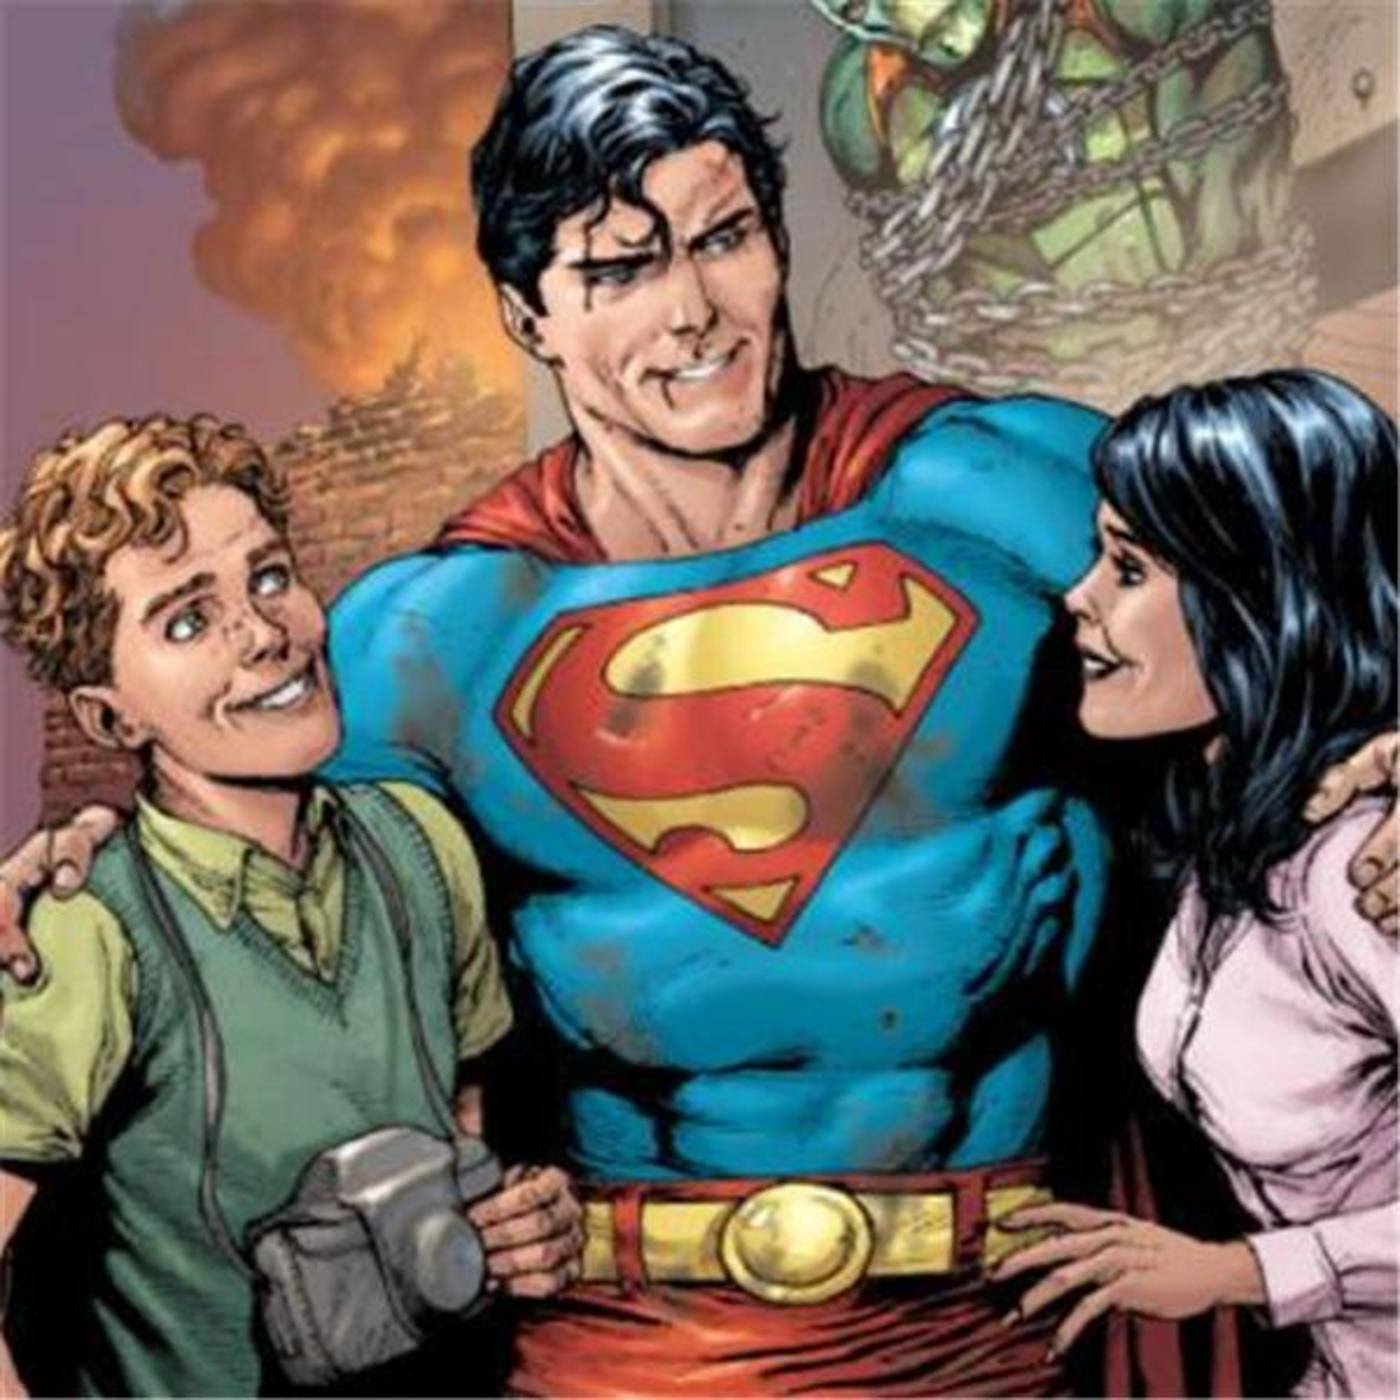 Smallvilletalk - Smallville Podcast